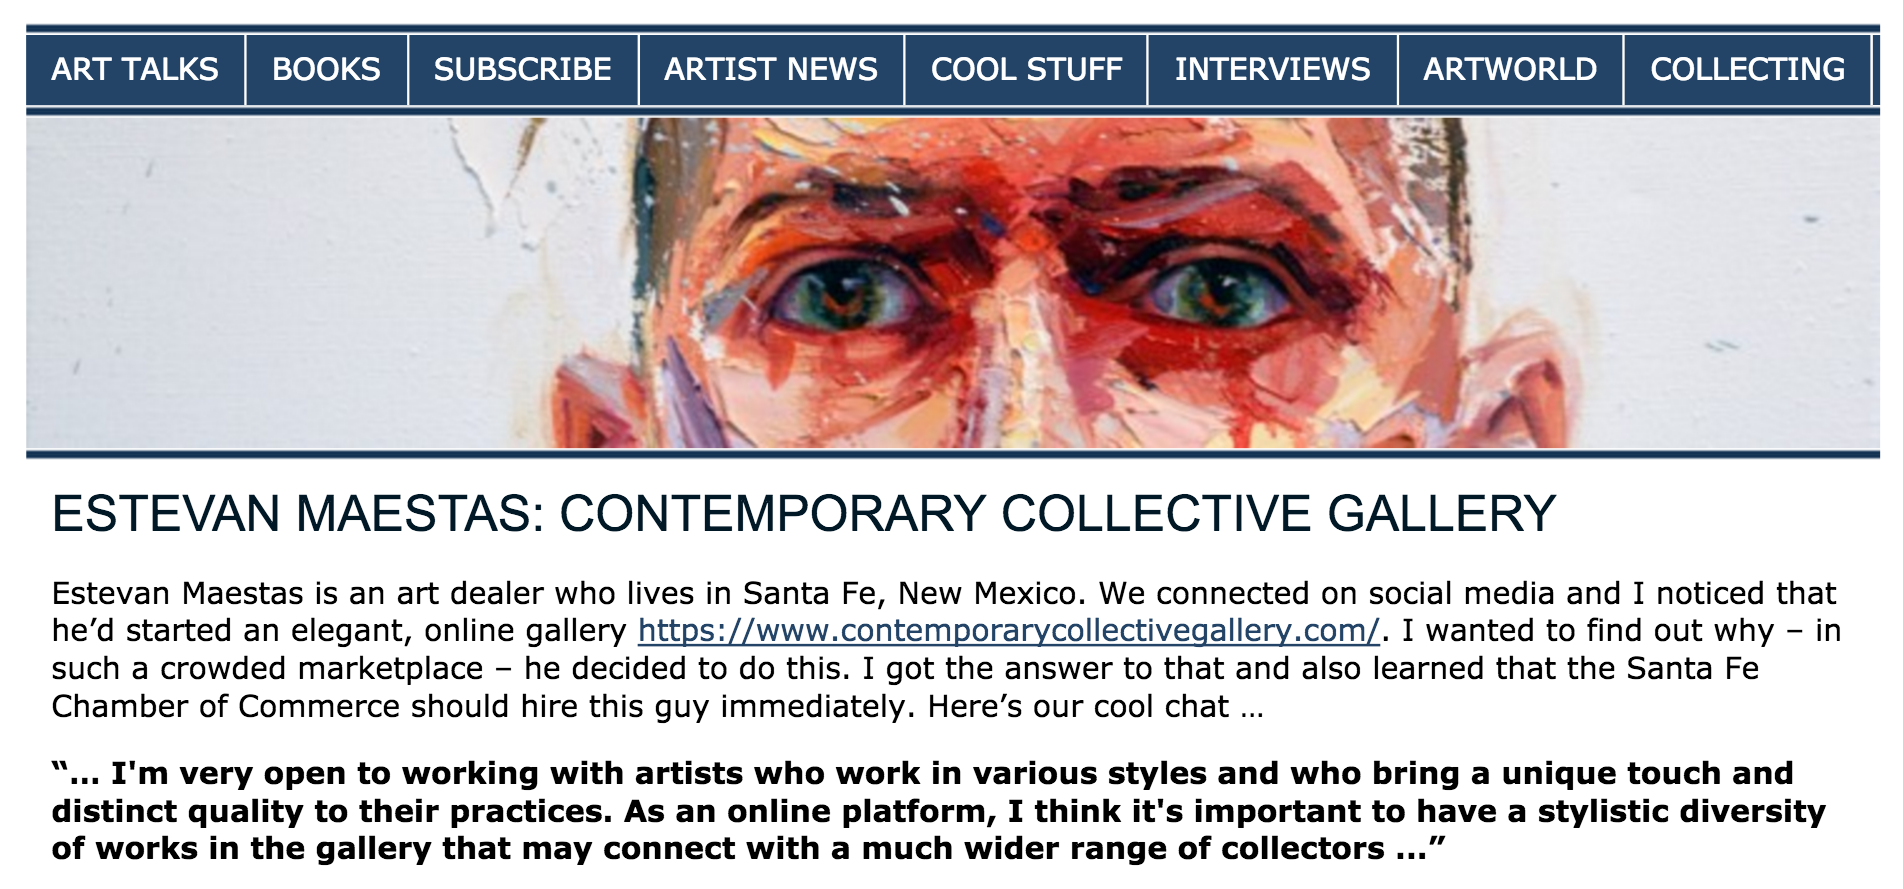 ArtBookGuy - Interview with Estevan Maestas, founder of Contemporary Collective Gallery